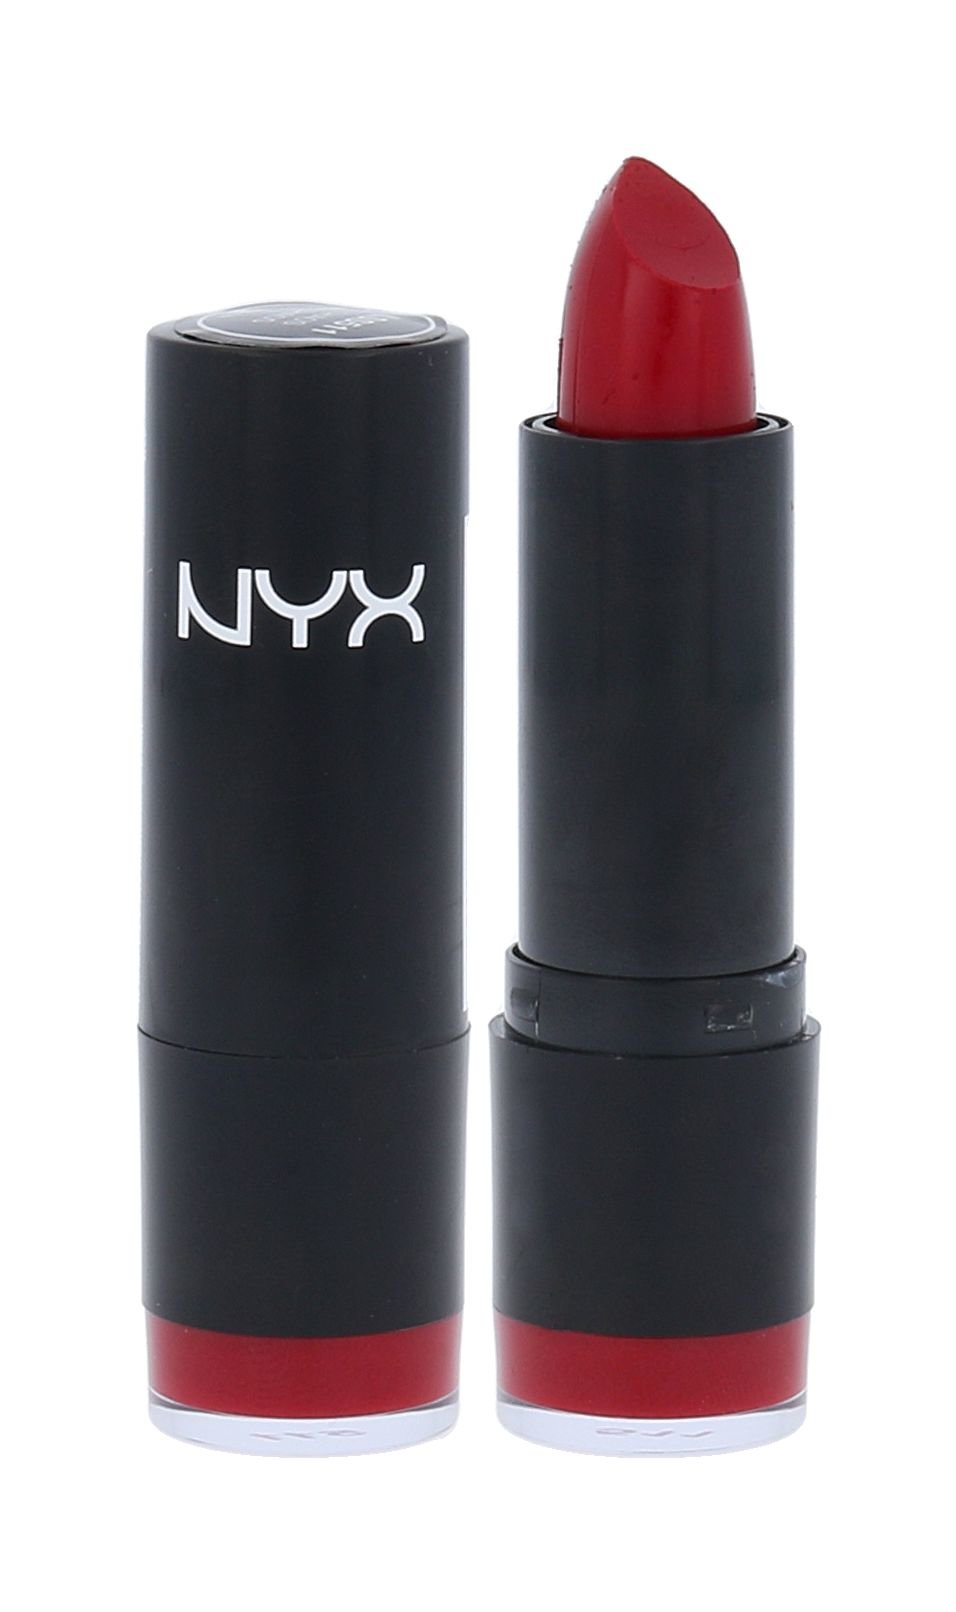 NYX Professional Makeup Extra Creamy Round Lipstick Cosmetic 4ml 511 Chaos